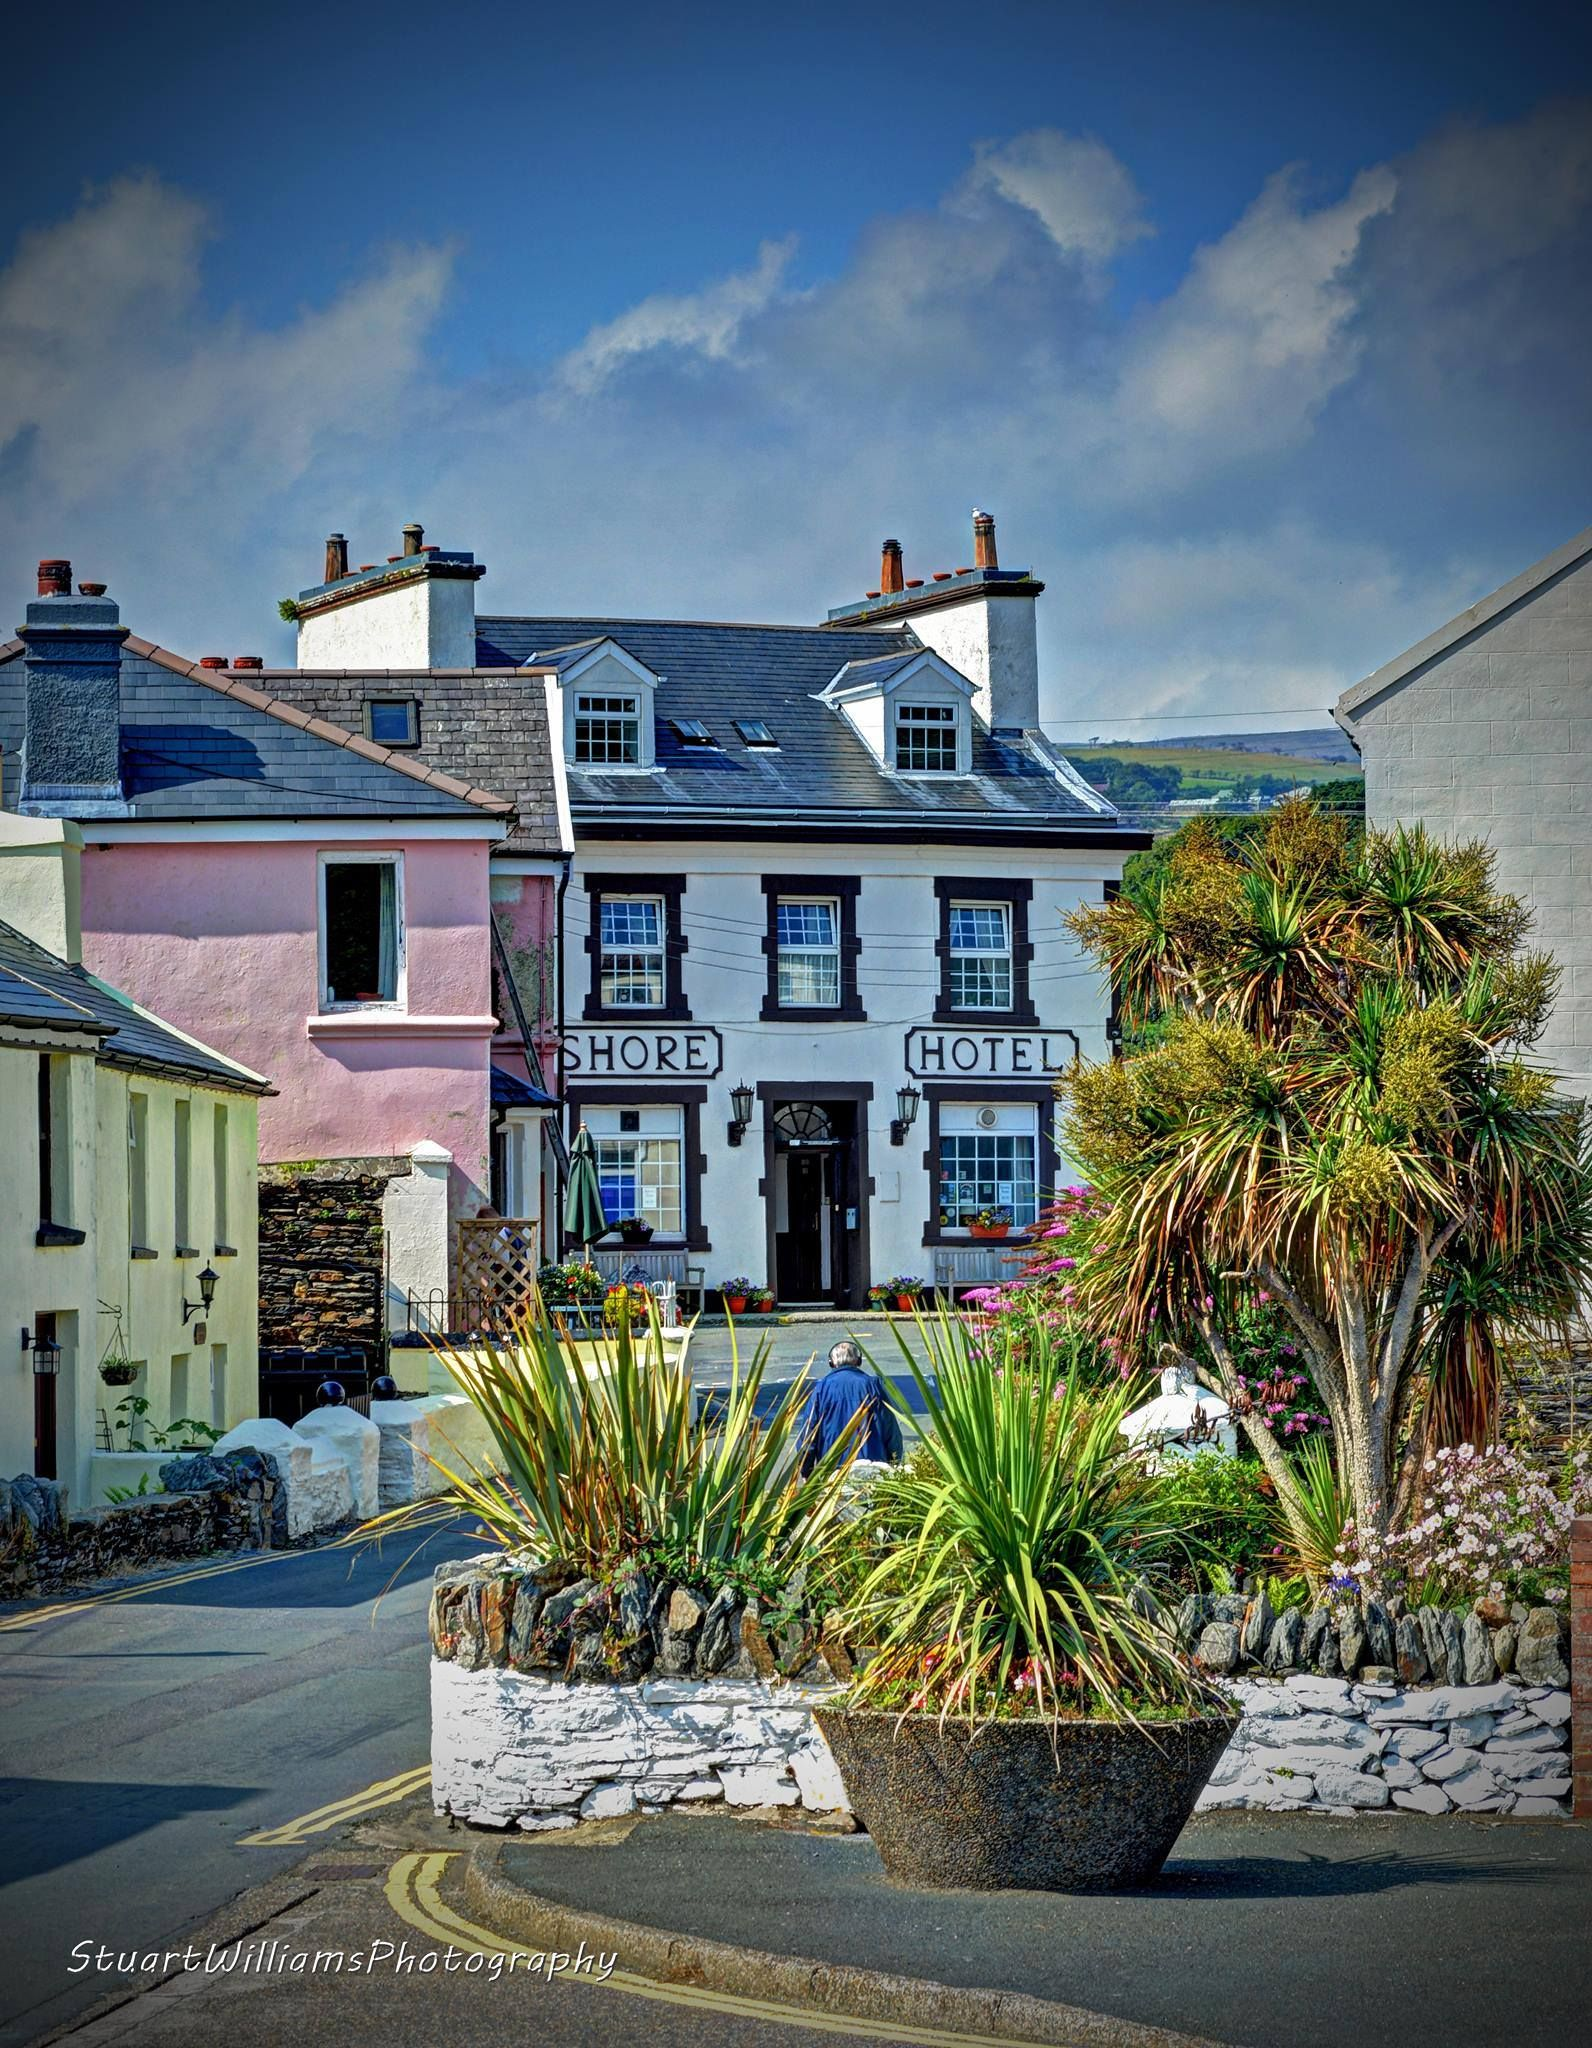 Shore Hotel, Laxey